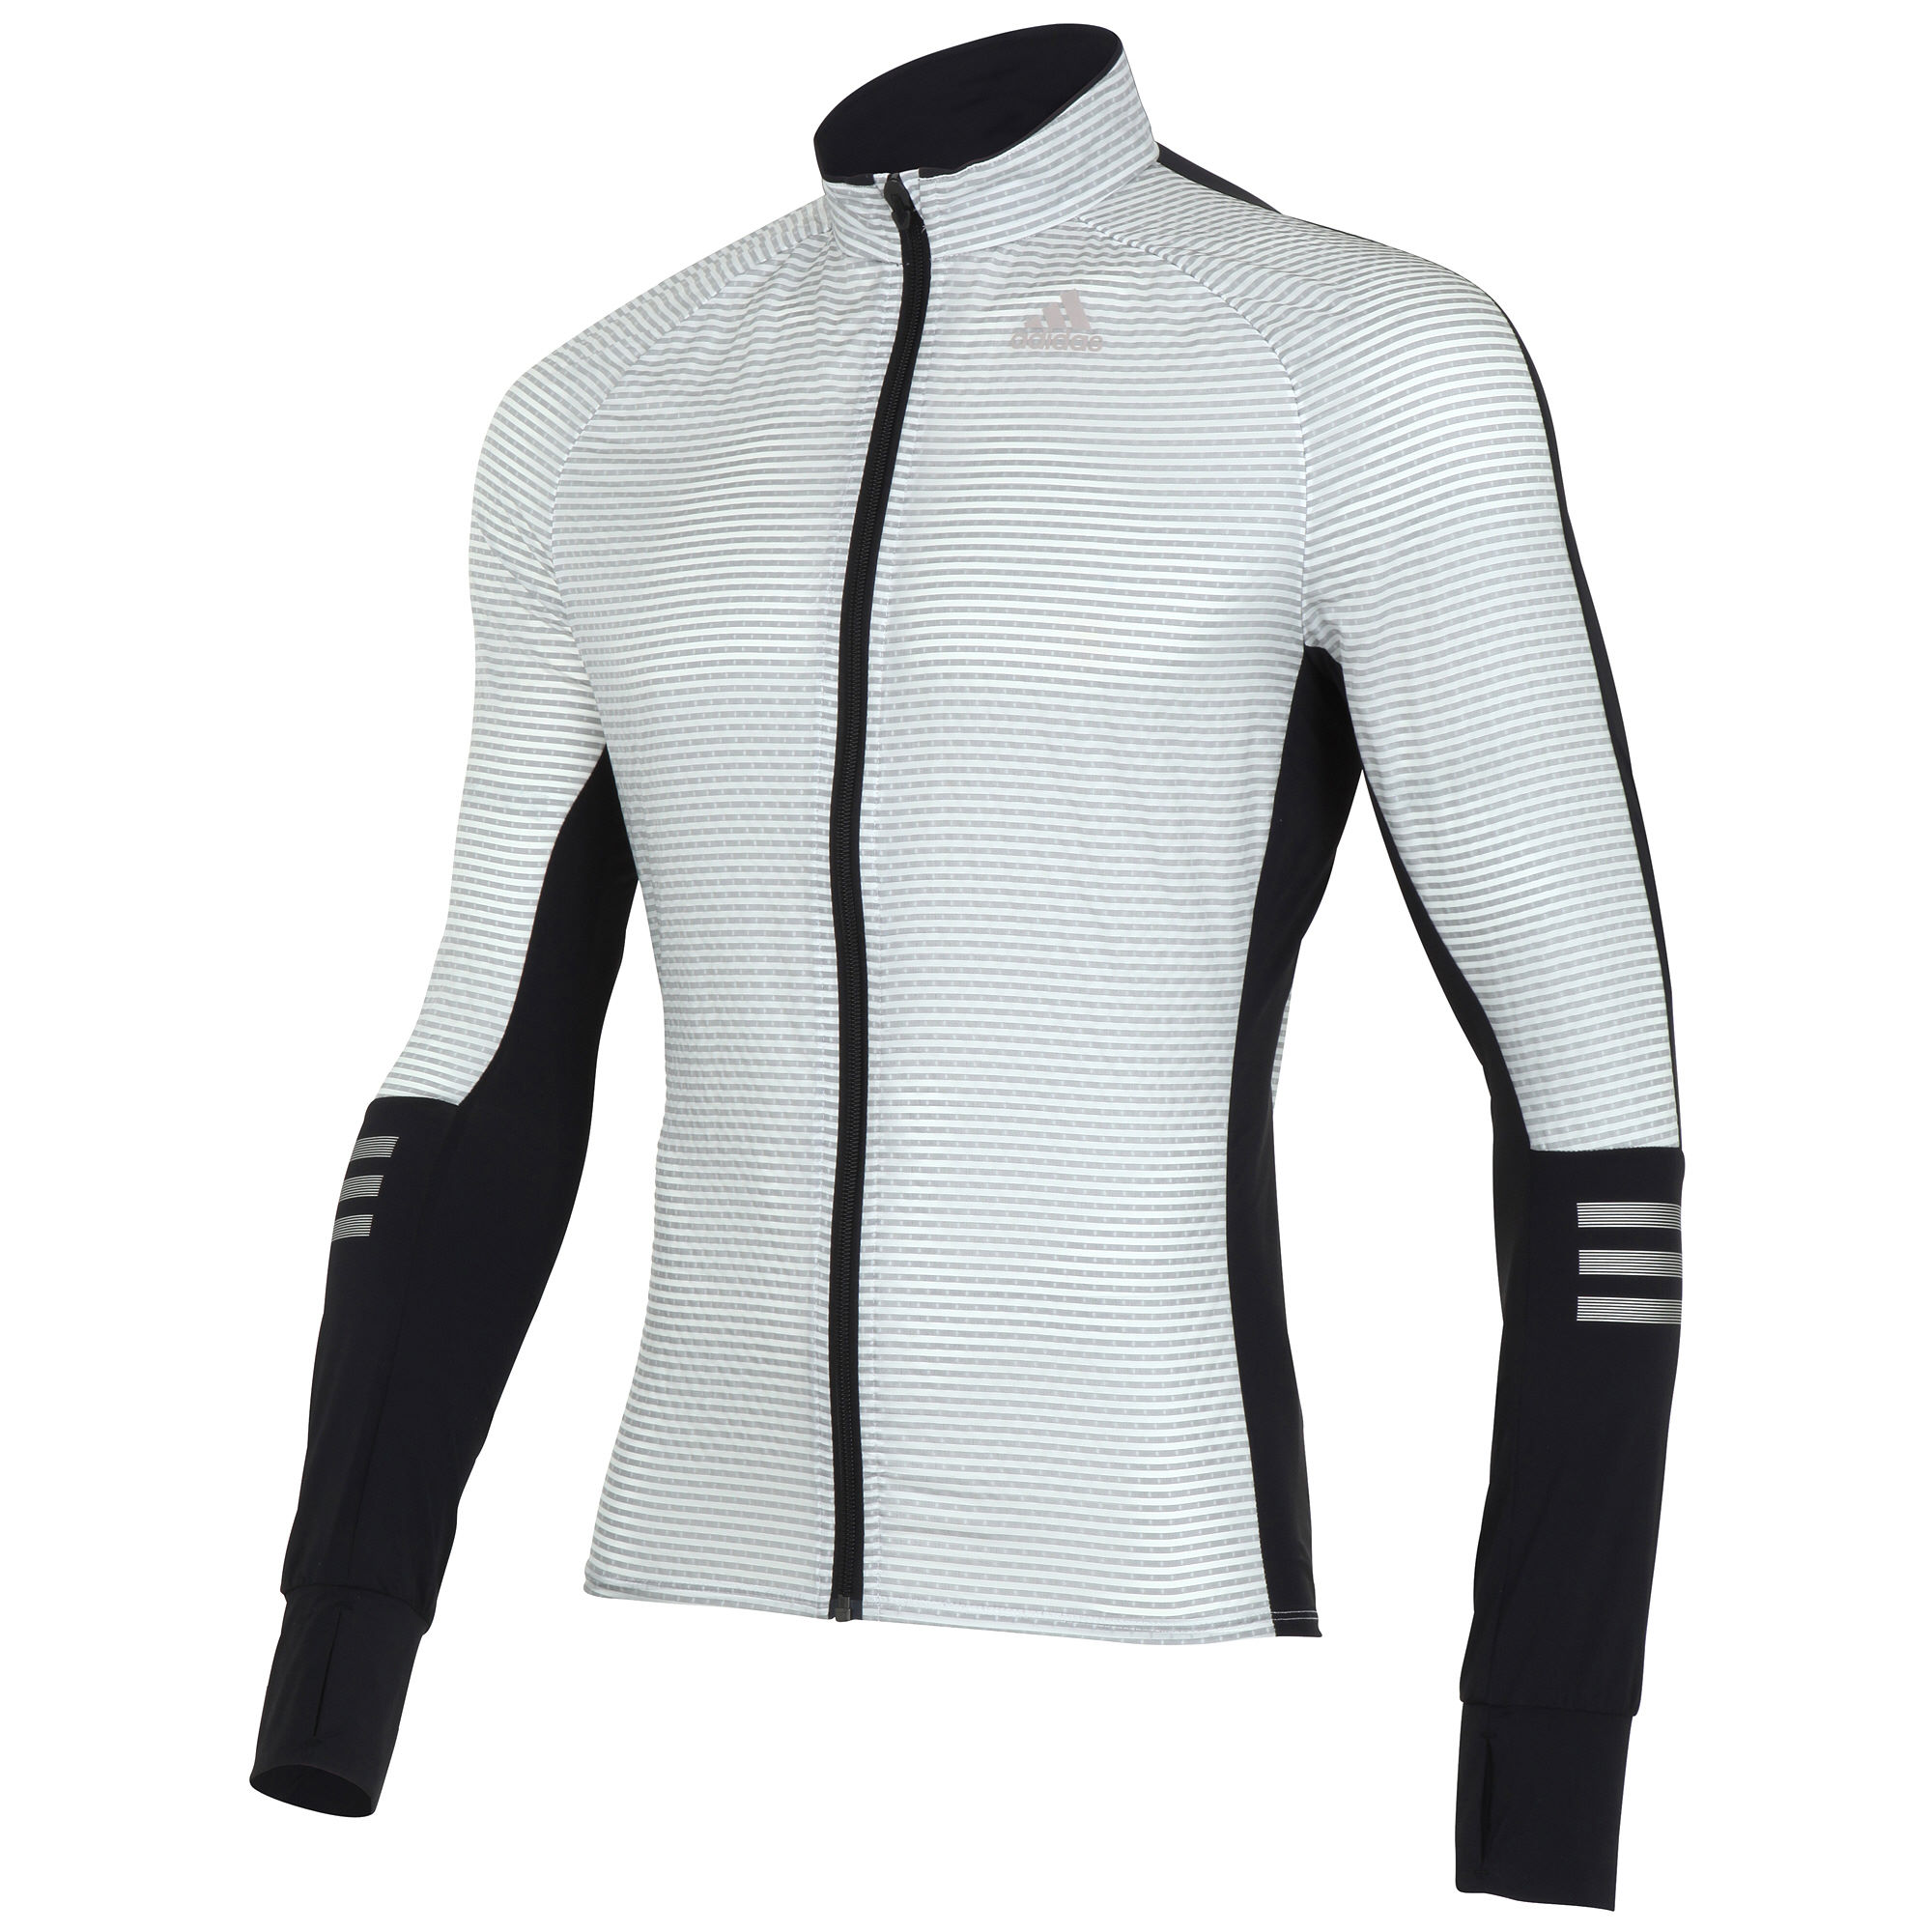 vestes de running coupe vent adidas adizero climaproof jacket ss16 wiggle france. Black Bedroom Furniture Sets. Home Design Ideas